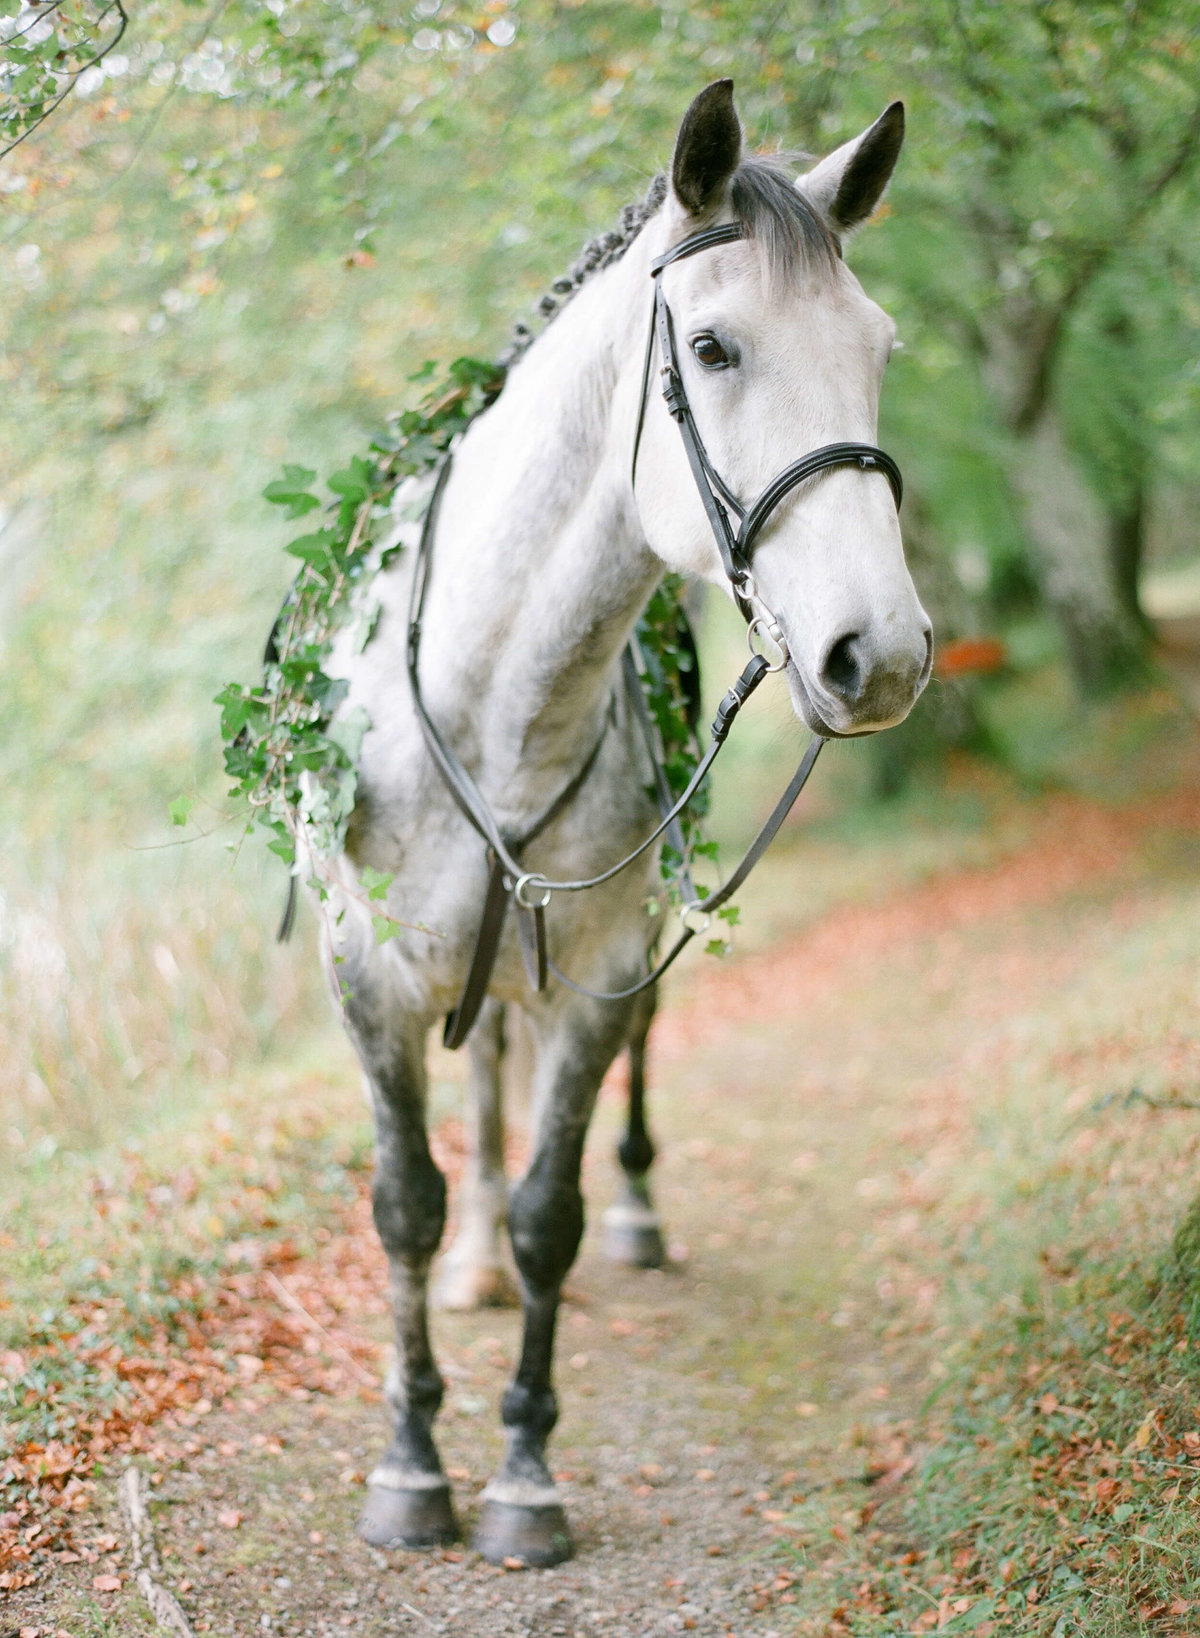 85-KTMerry-destination-weddings-horse-garland-Ireland